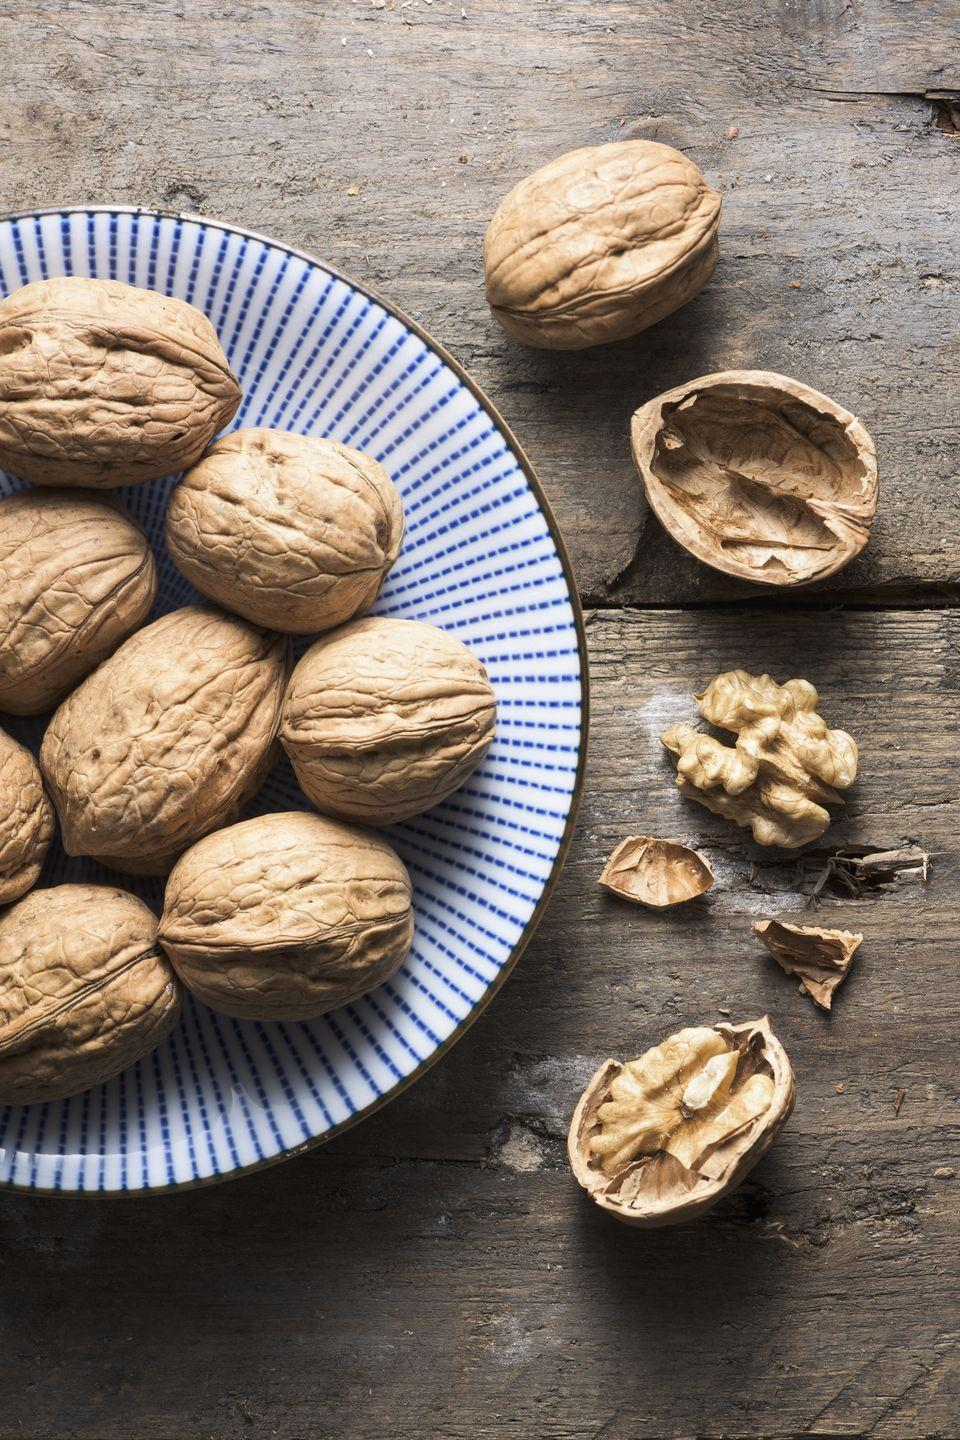 "<p>Eating walnuts regularly was linked with a reduced risk of heart disease, according to data from the <a href=""https://www.ncbi.nlm.nih.gov/pubmed/29145952"" rel=""nofollow noopener"" target=""_blank"" data-ylk=""slk:Nurses' Health Study"" class=""link rapid-noclick-resp"">Nurses' Health Study</a>. Eating as little as one serving of these nuts each week can lower your chances of cardiovascular disease by up to 19%! Consider swapping walnuts for croutons in salads and soups; add 'em to breakfast cereal or yogurt; or nosh on walnuts with fruit to reap the cholesterol-lowering benefits.</p>"